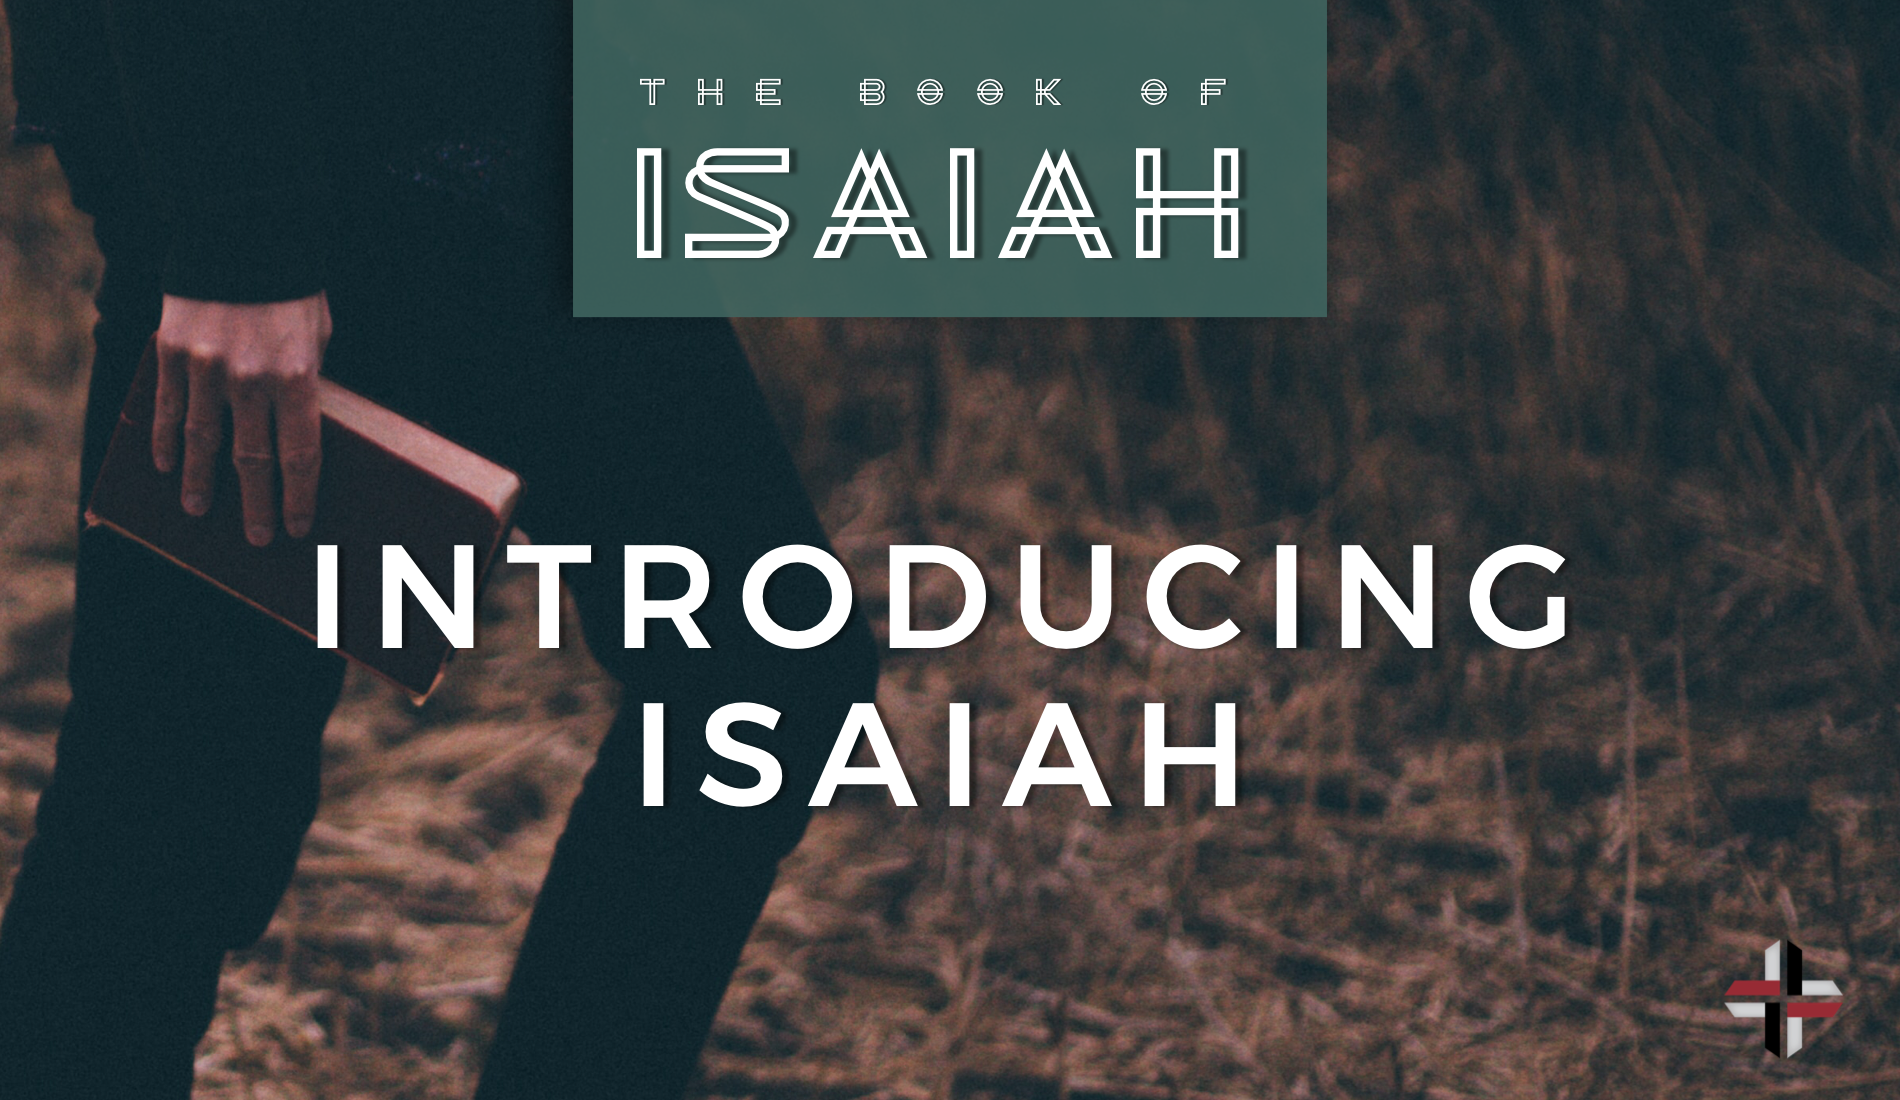 Introducing Isaiah